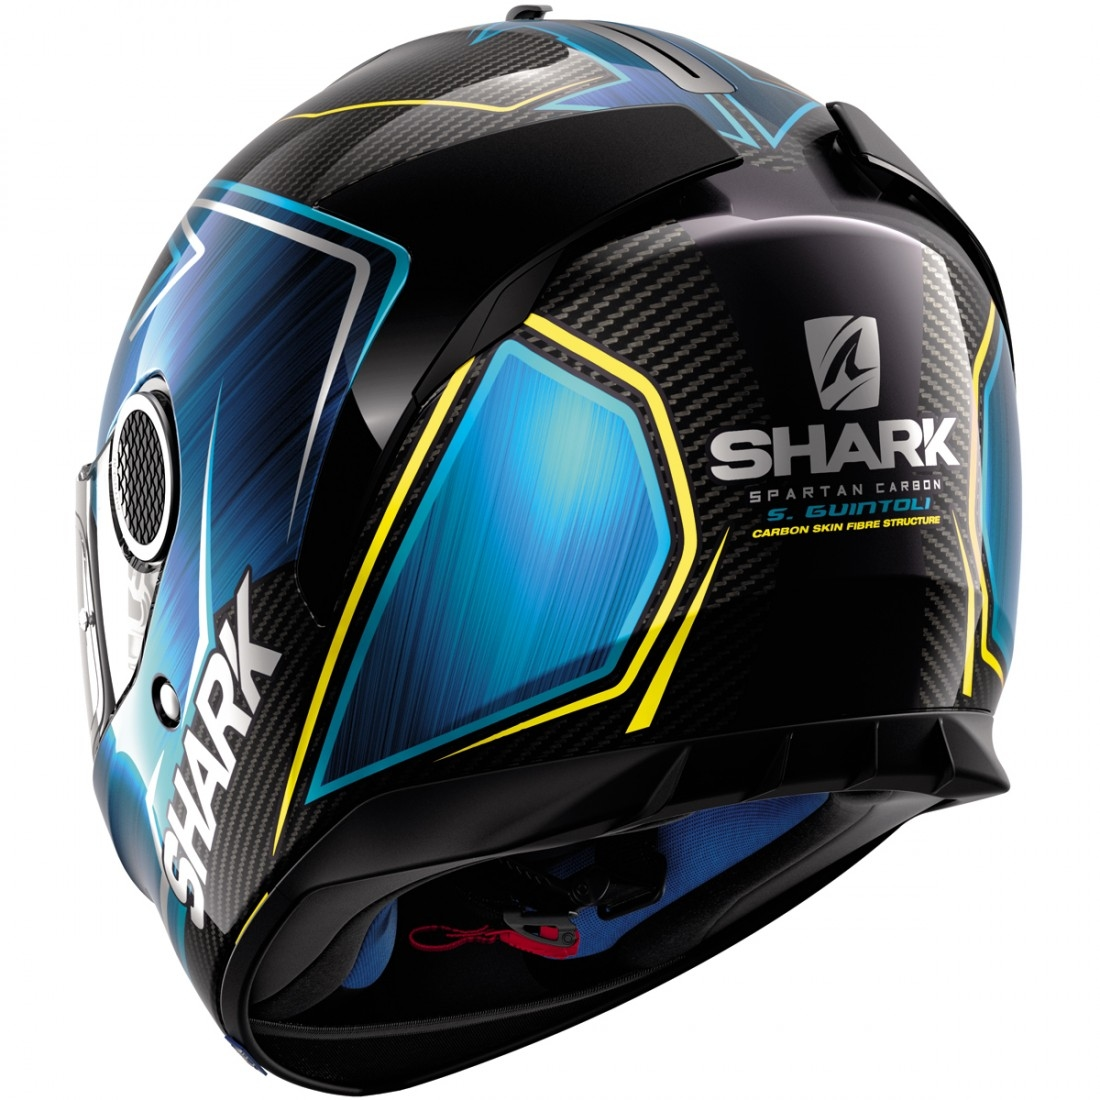 casque shark spartan carbon replica guintoli carbon blue yellow motocard. Black Bedroom Furniture Sets. Home Design Ideas